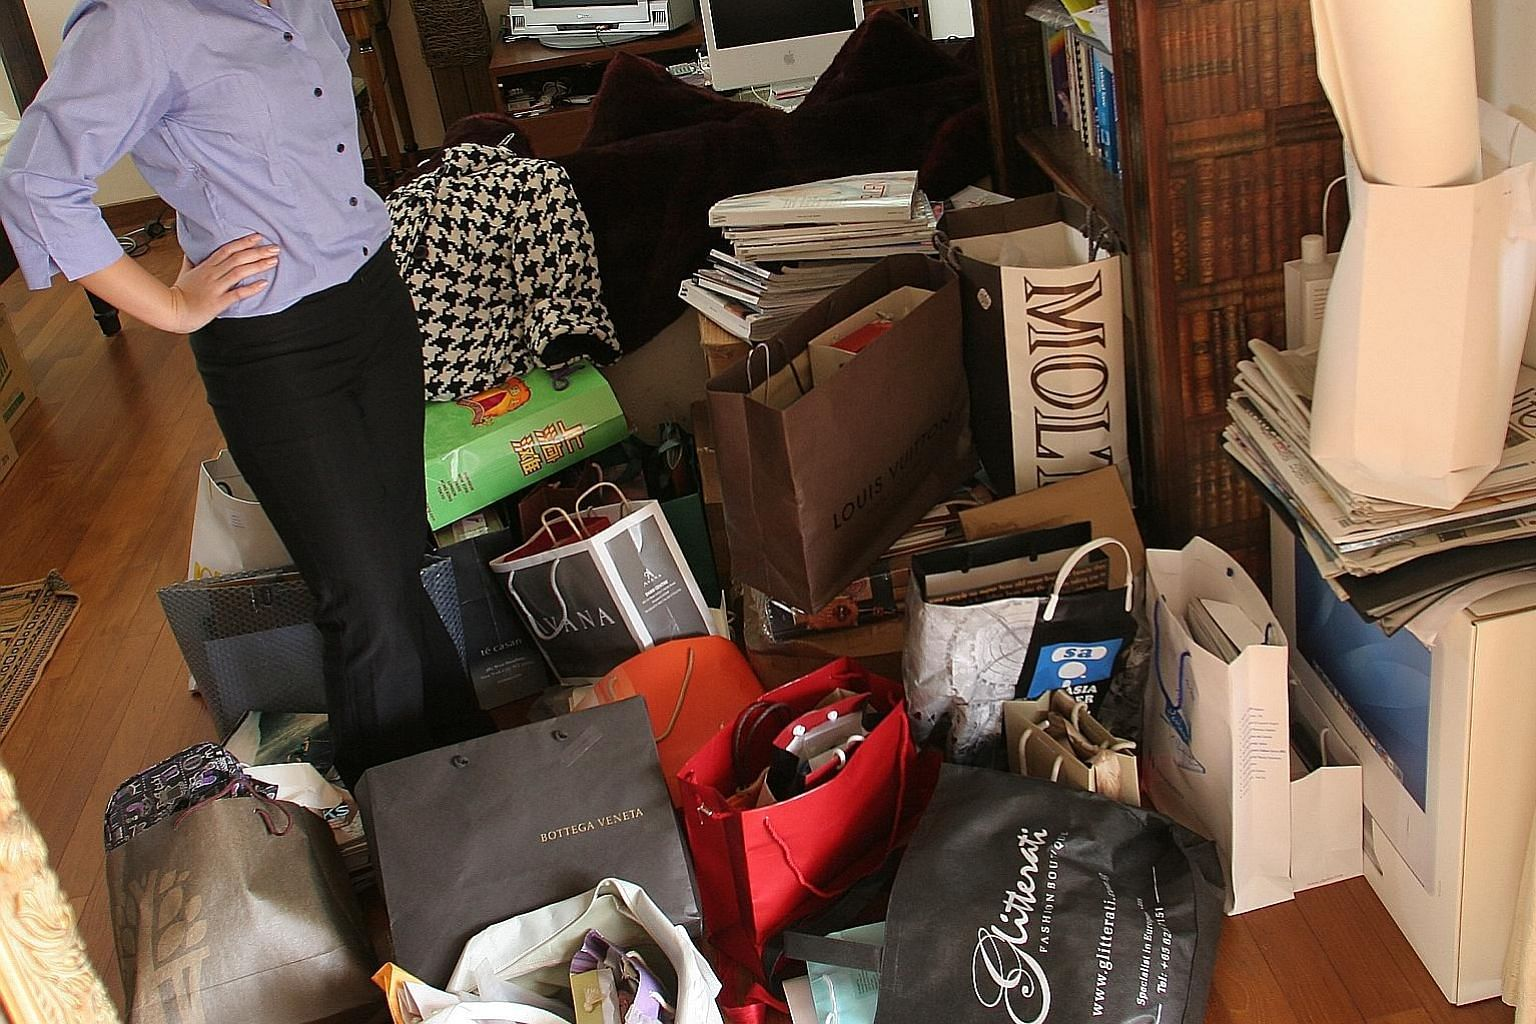 While decluttering is good for the earth, it can be dangerous if we feel so good about purging that it gives us permission to shop some more. First, we get high on tossing out stuff, then we get high on buying stuff.